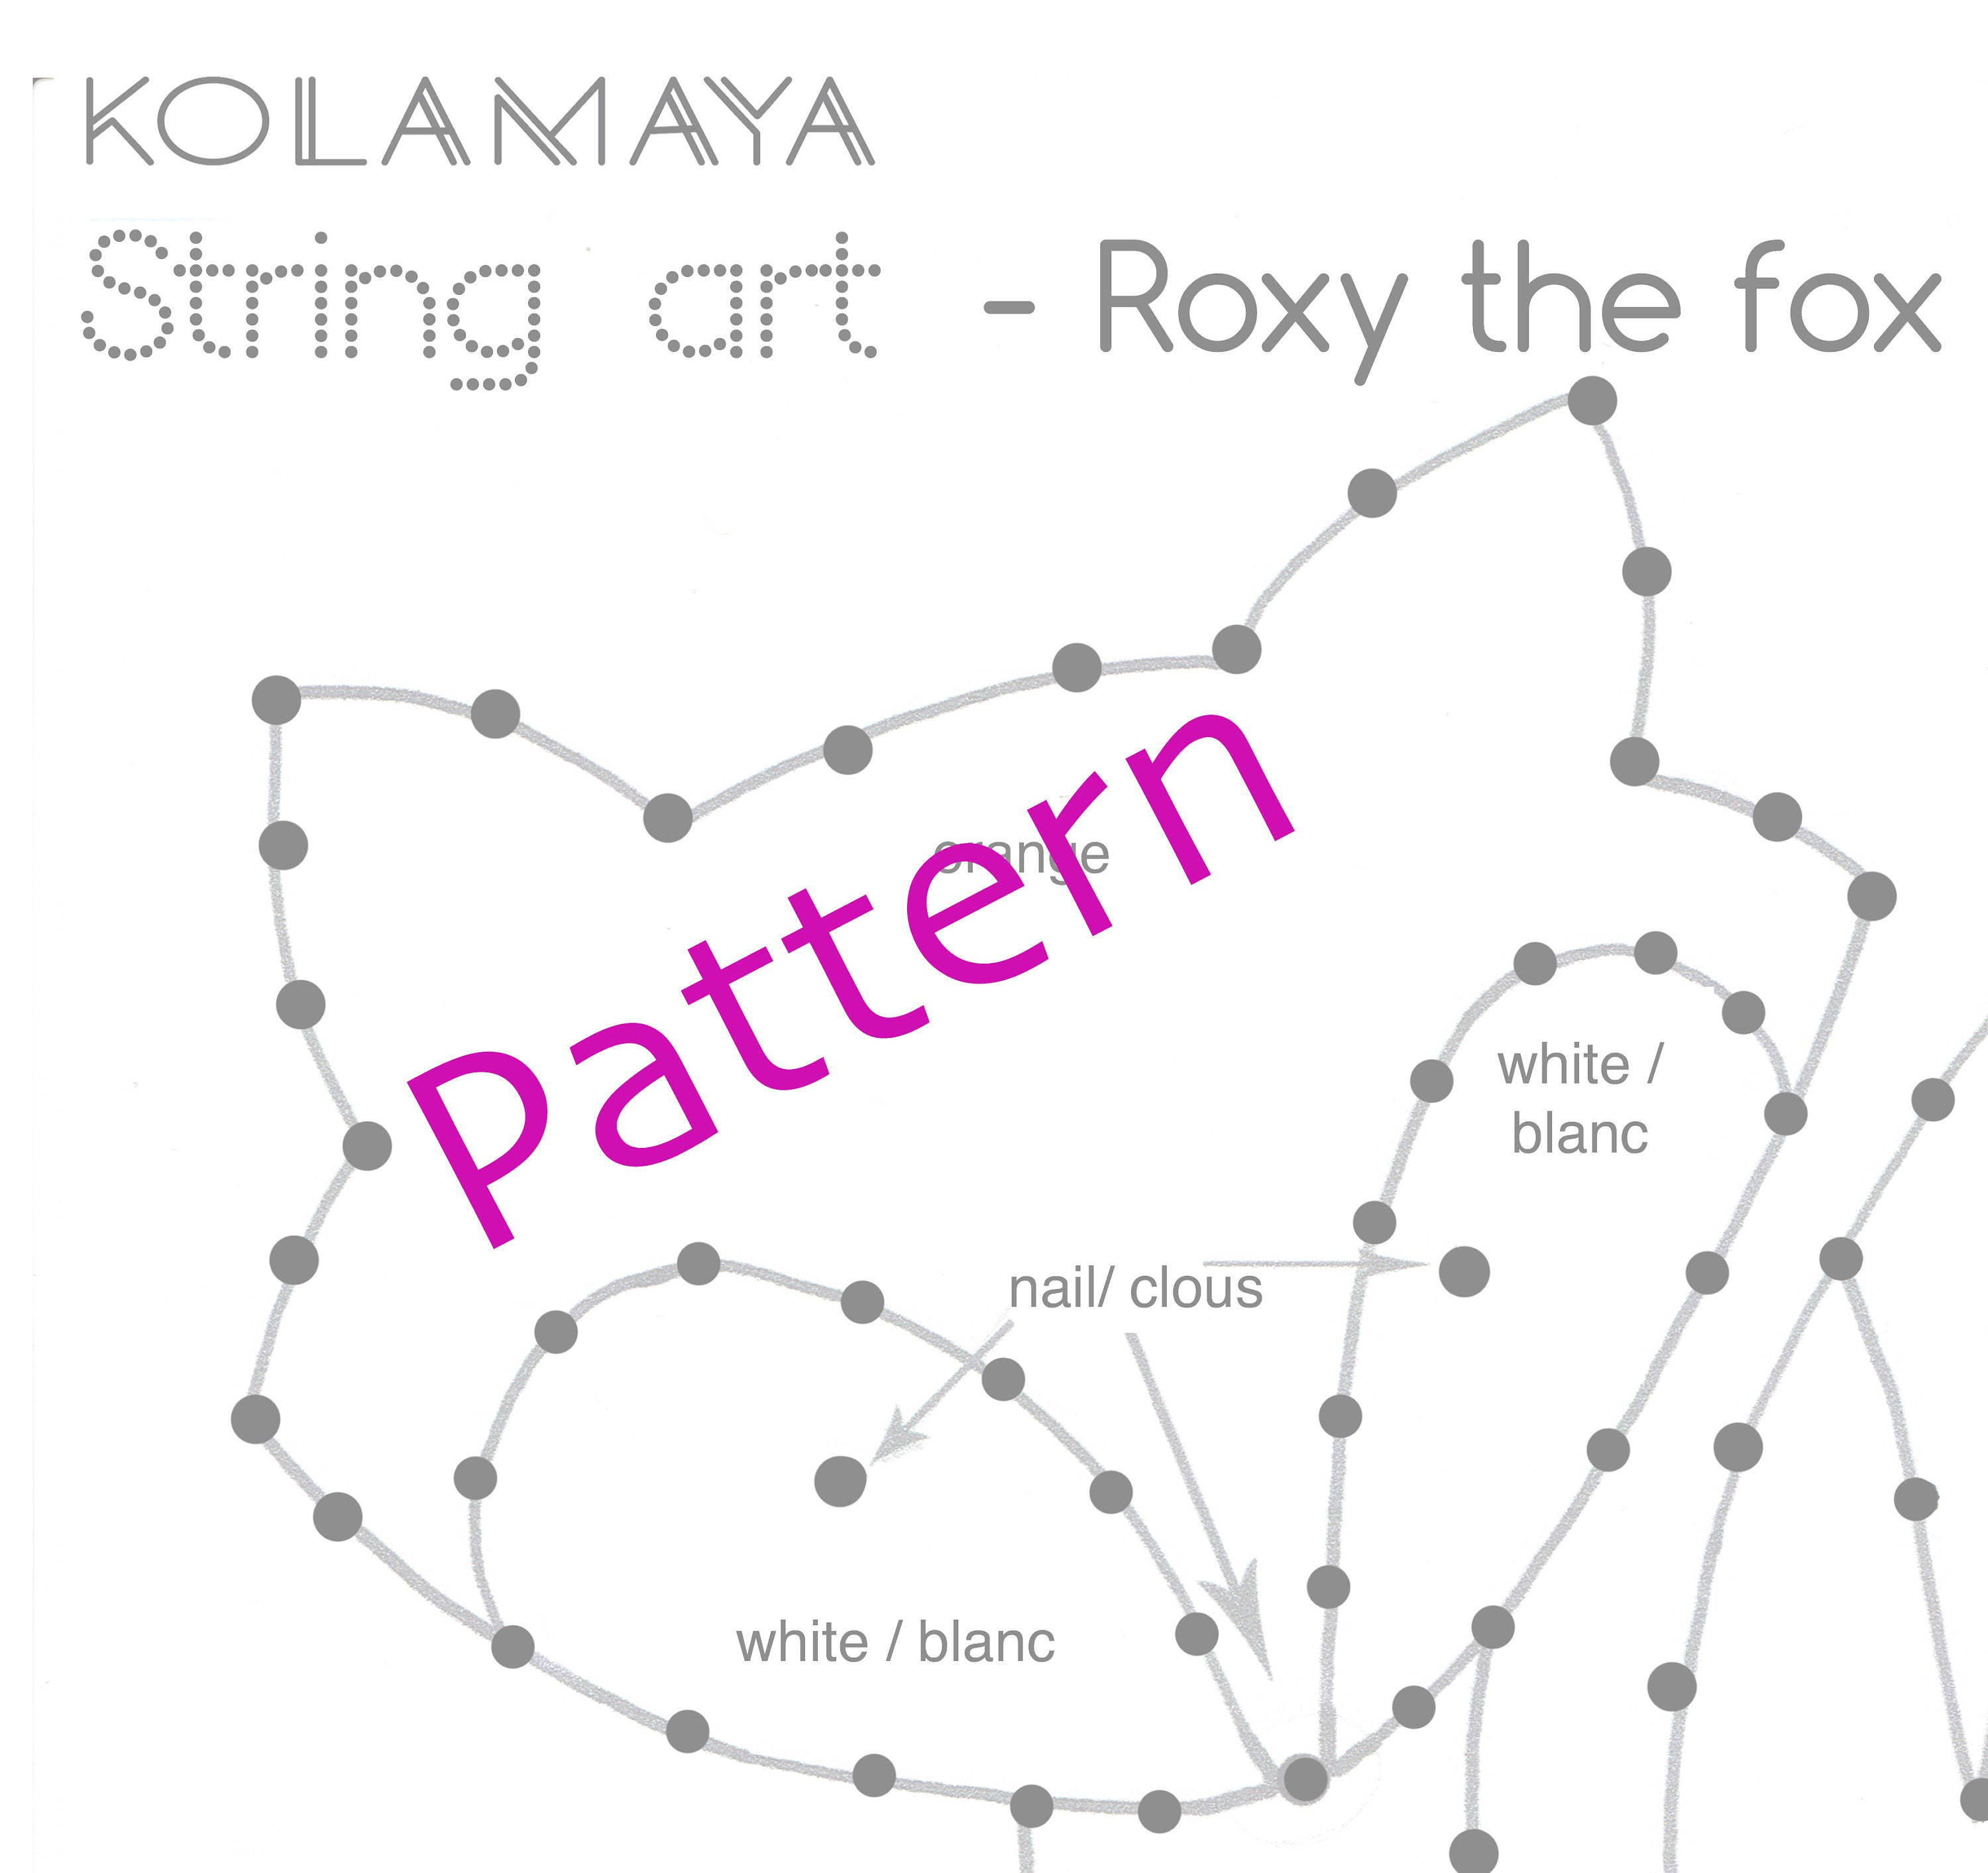 string art pattern instructions roxy the fox. Black Bedroom Furniture Sets. Home Design Ideas